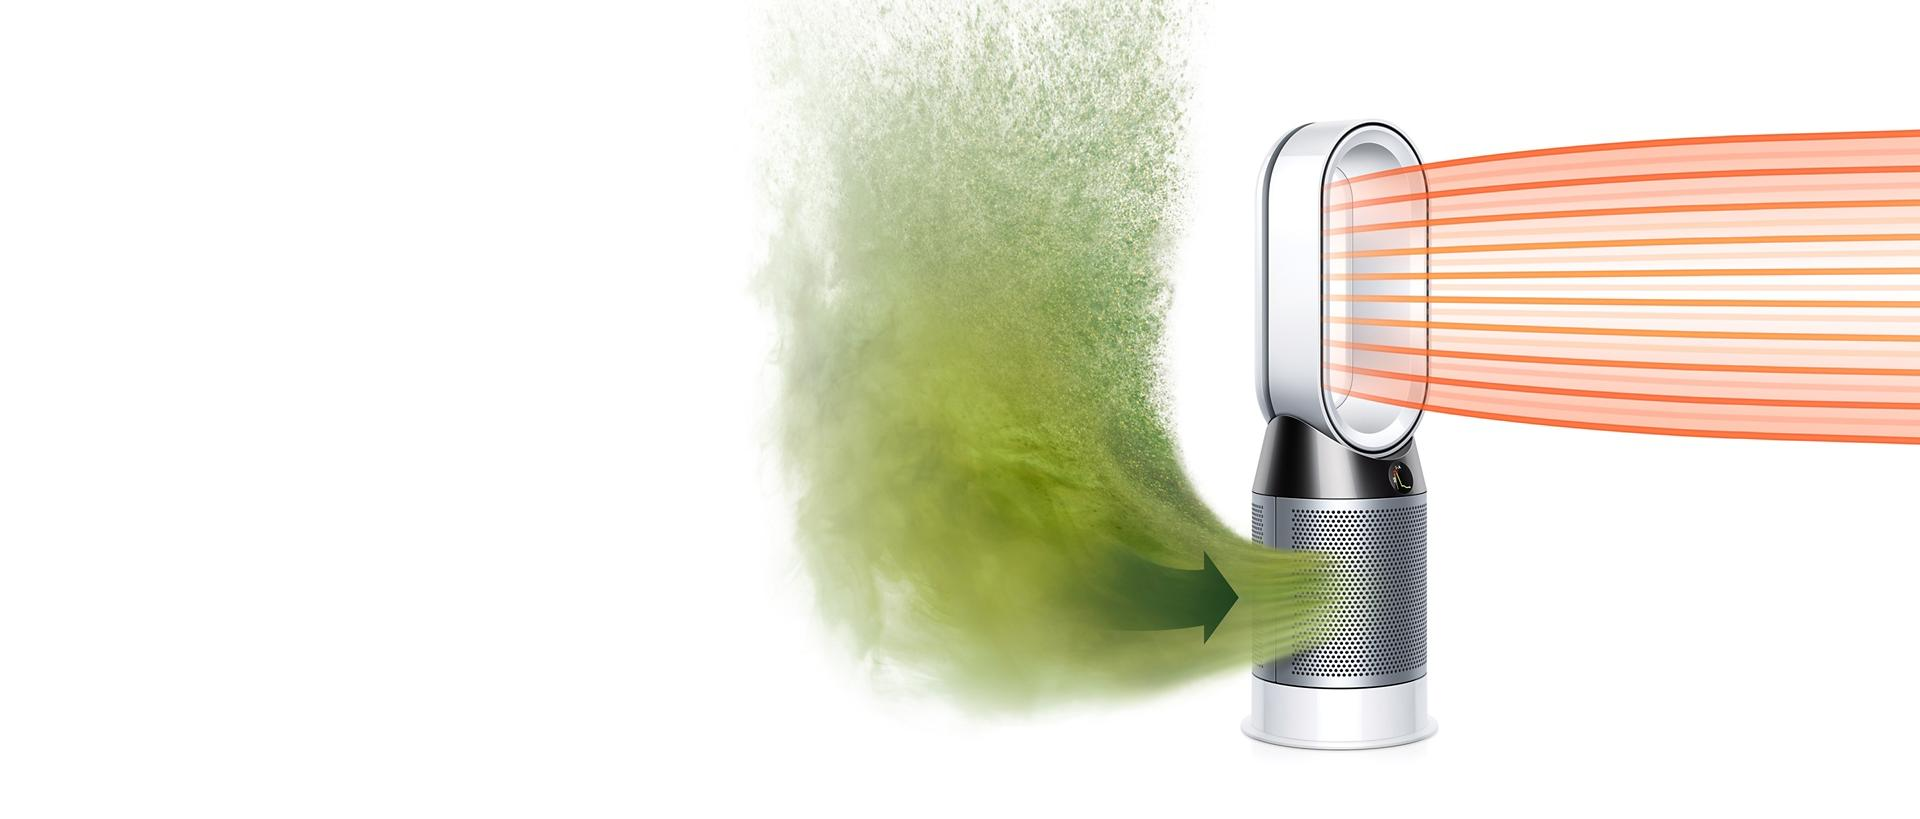 Dyson Pure Hot+Cool purifier fan ingesting dirty air and projecting heated, purified air